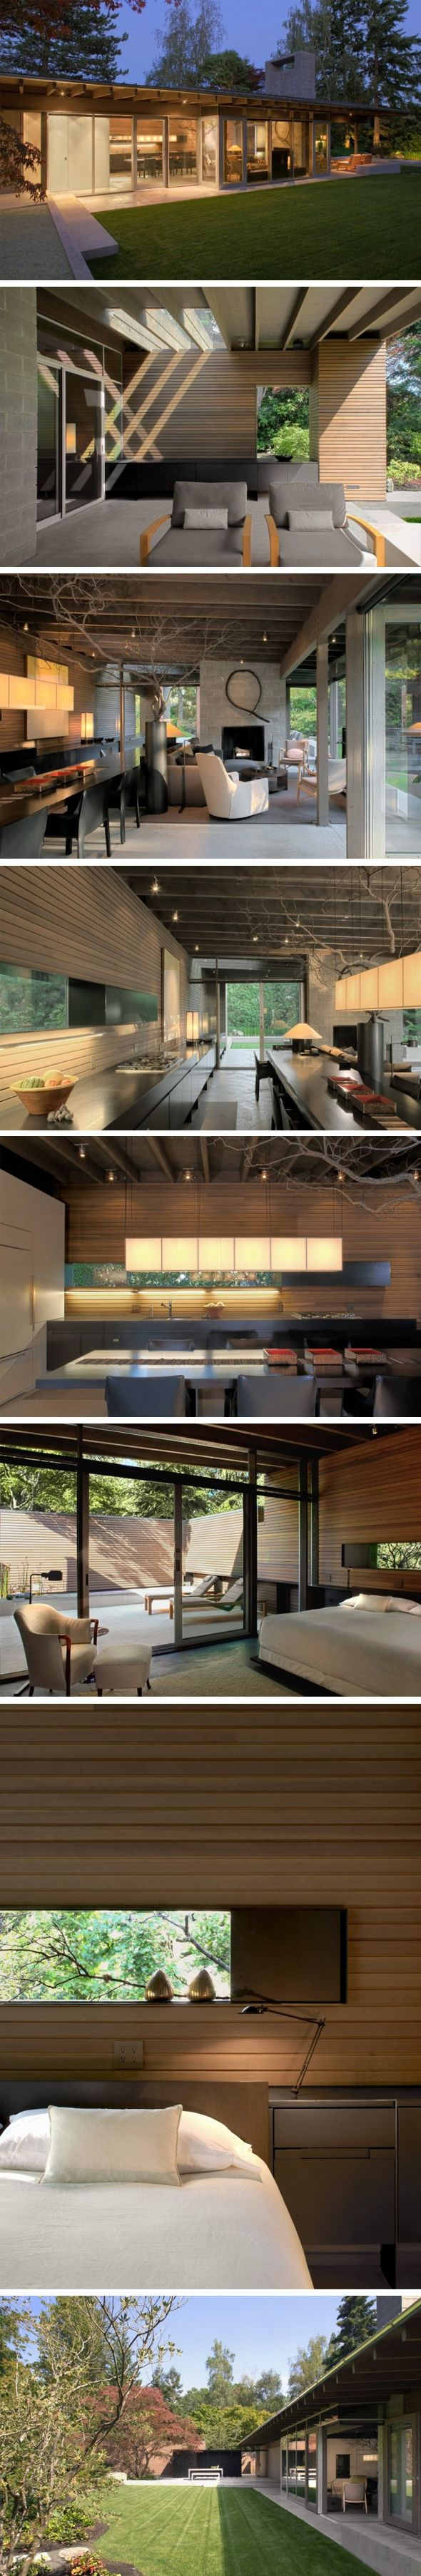 1000+ images about Modern houses on Pinterest Villas, Studios ... - ^